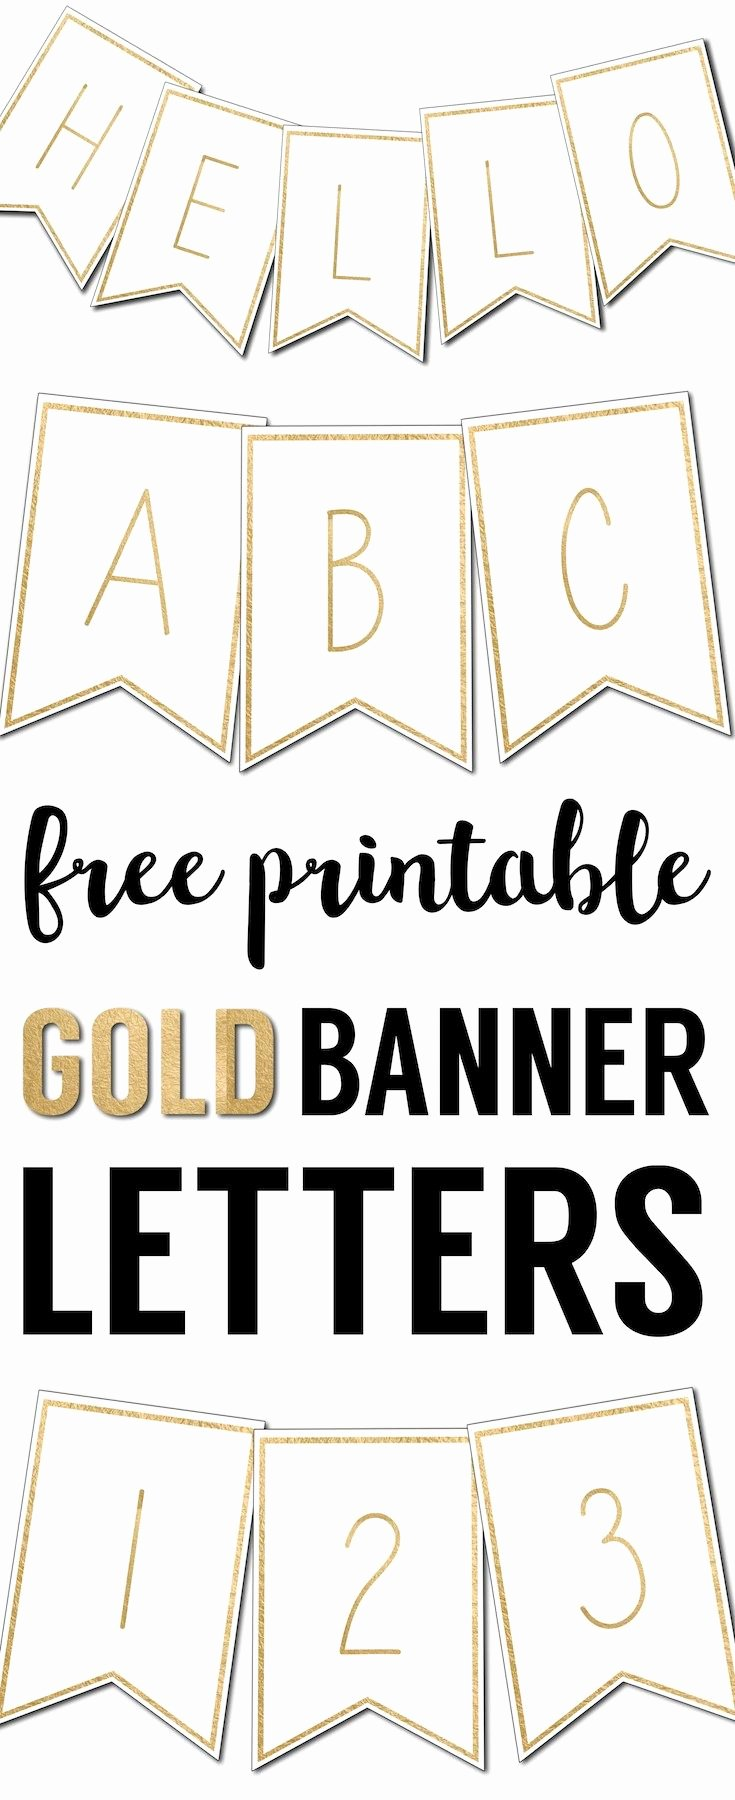 Printable Banner Templates Fresh Free Printable Banner Letters Templates